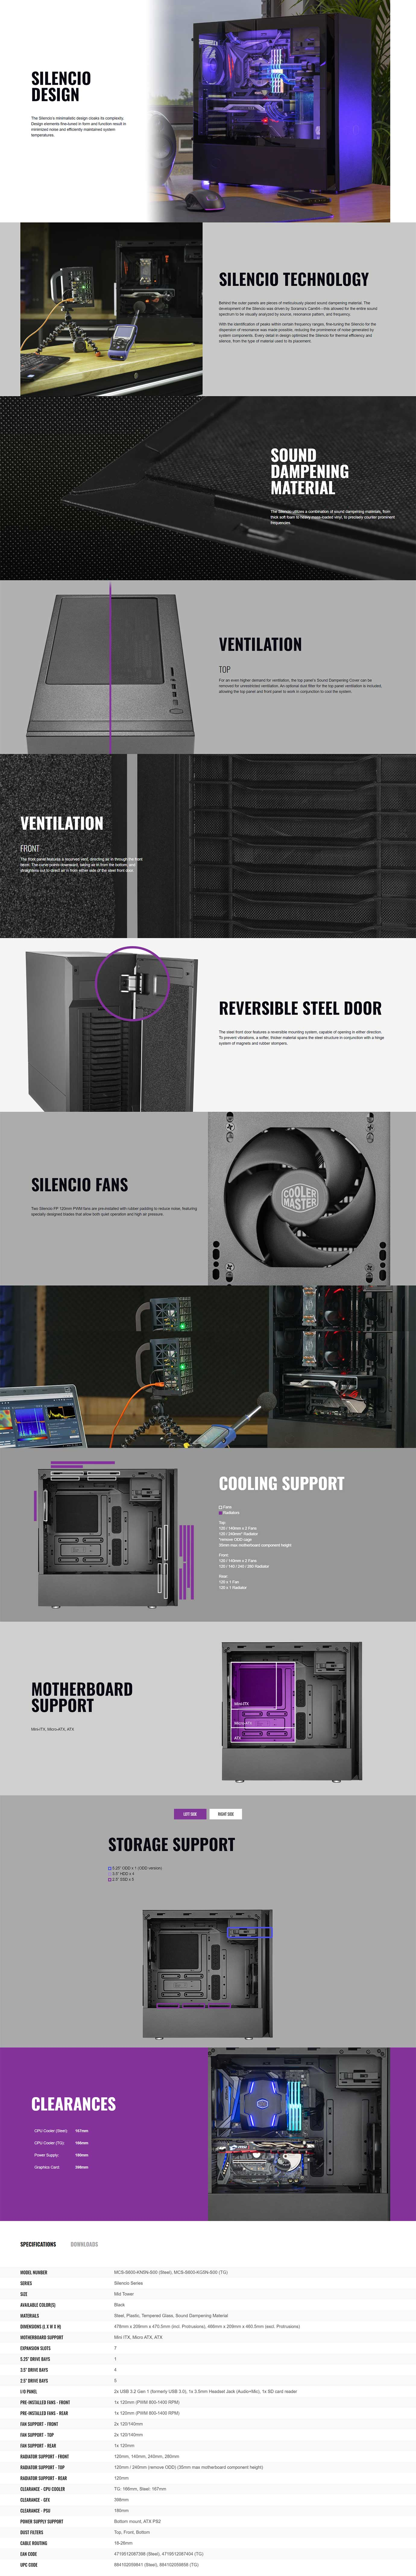 Cooler Master Silencio S600 ATX Case wit Seamless Side Panel